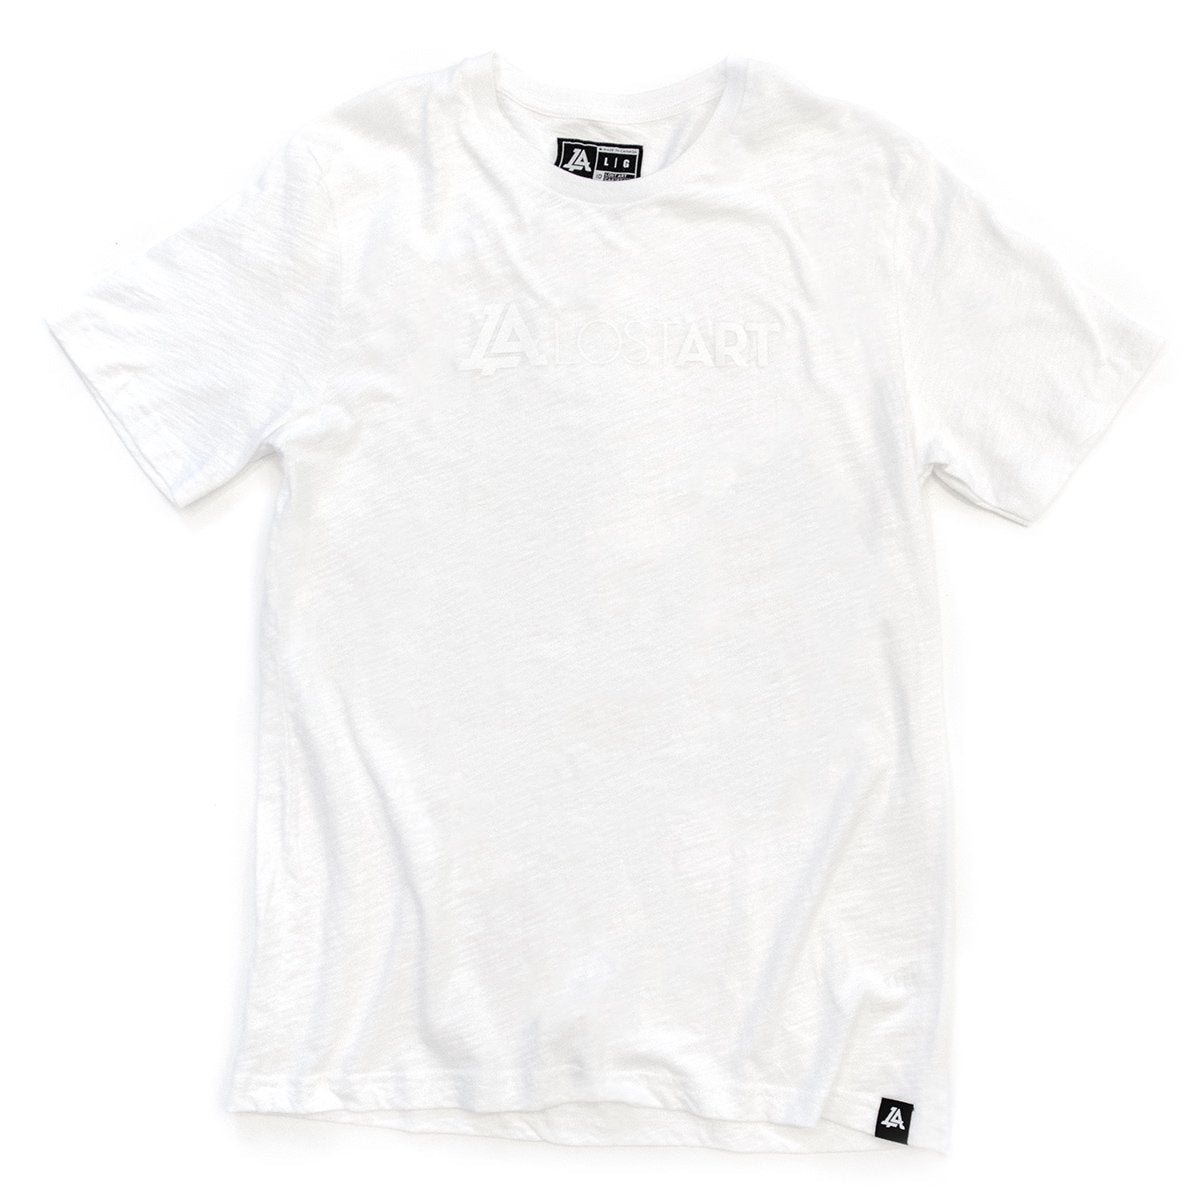 Lost Art Canada - white on white ghost logo tee front view